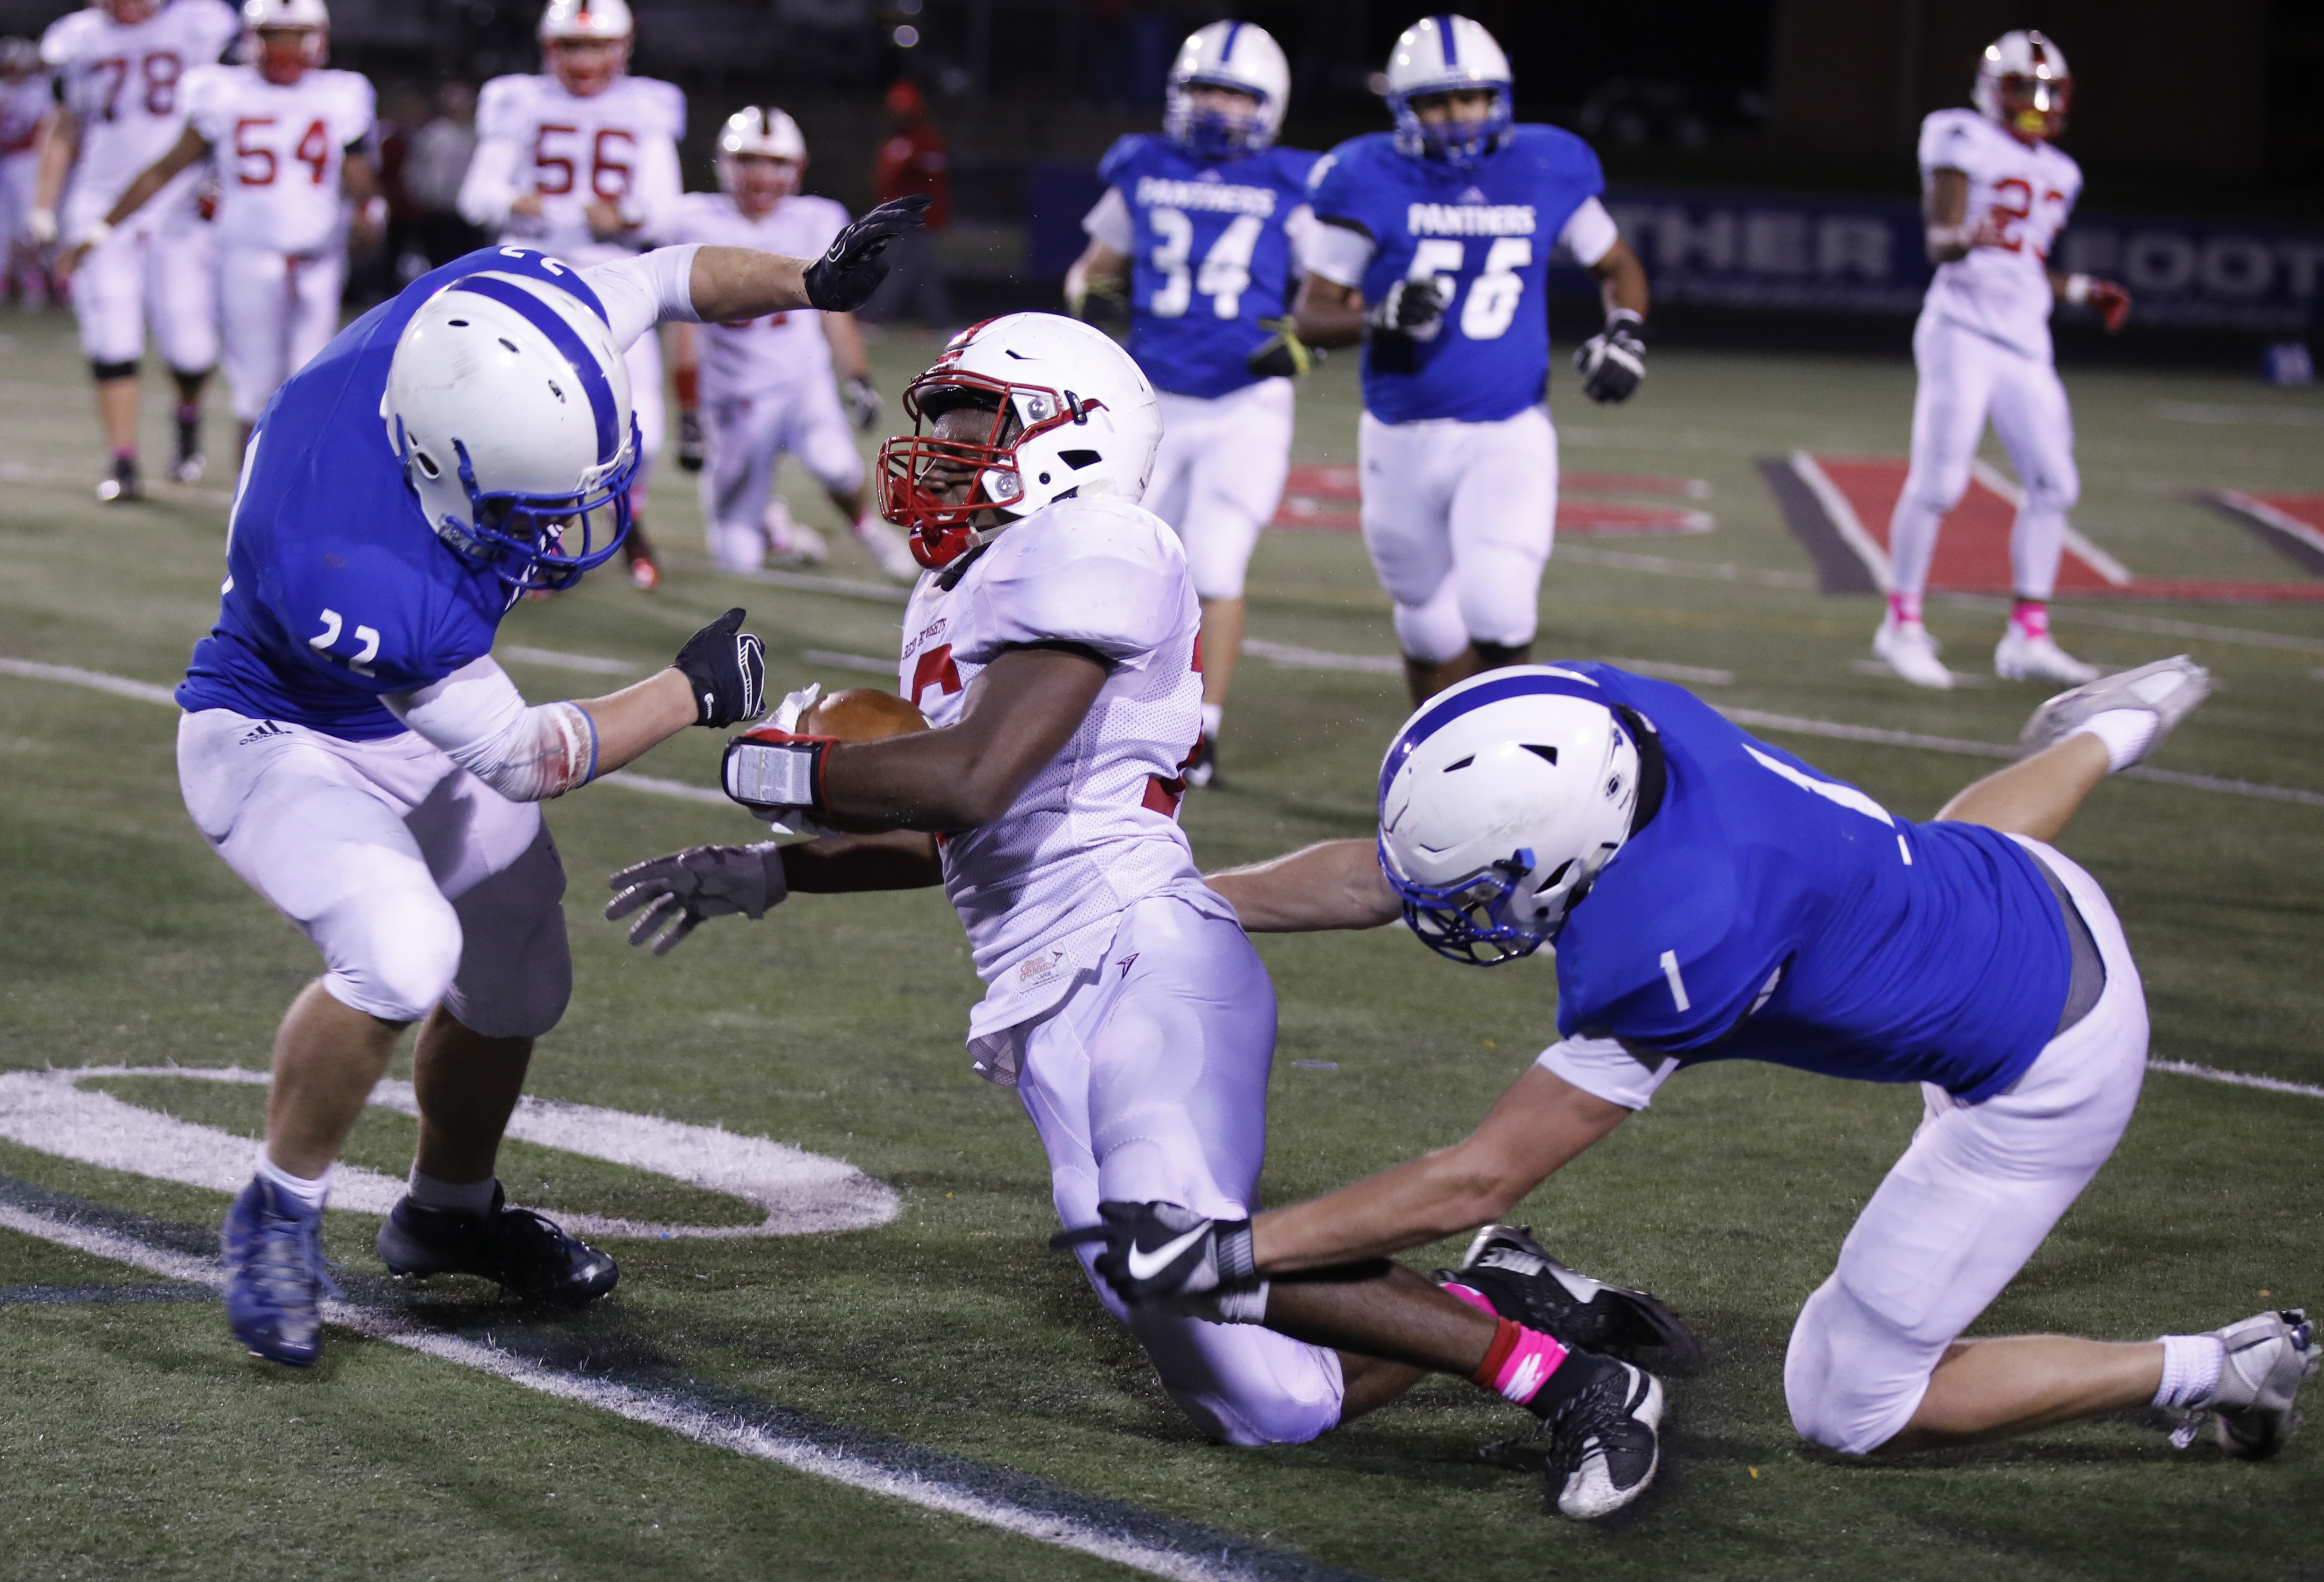 Ikenna Ujuagu (16) of Bernilde gets taken down by Nicholas Robinson (1) and Cade McMahon of Spring Lake Park. Spring Lake Park defeated Bernilde-St. Margaret's at home 19-13 in overtime from a tochdown from the senior QB, Zachary Ojile. Photo by Chris Juh